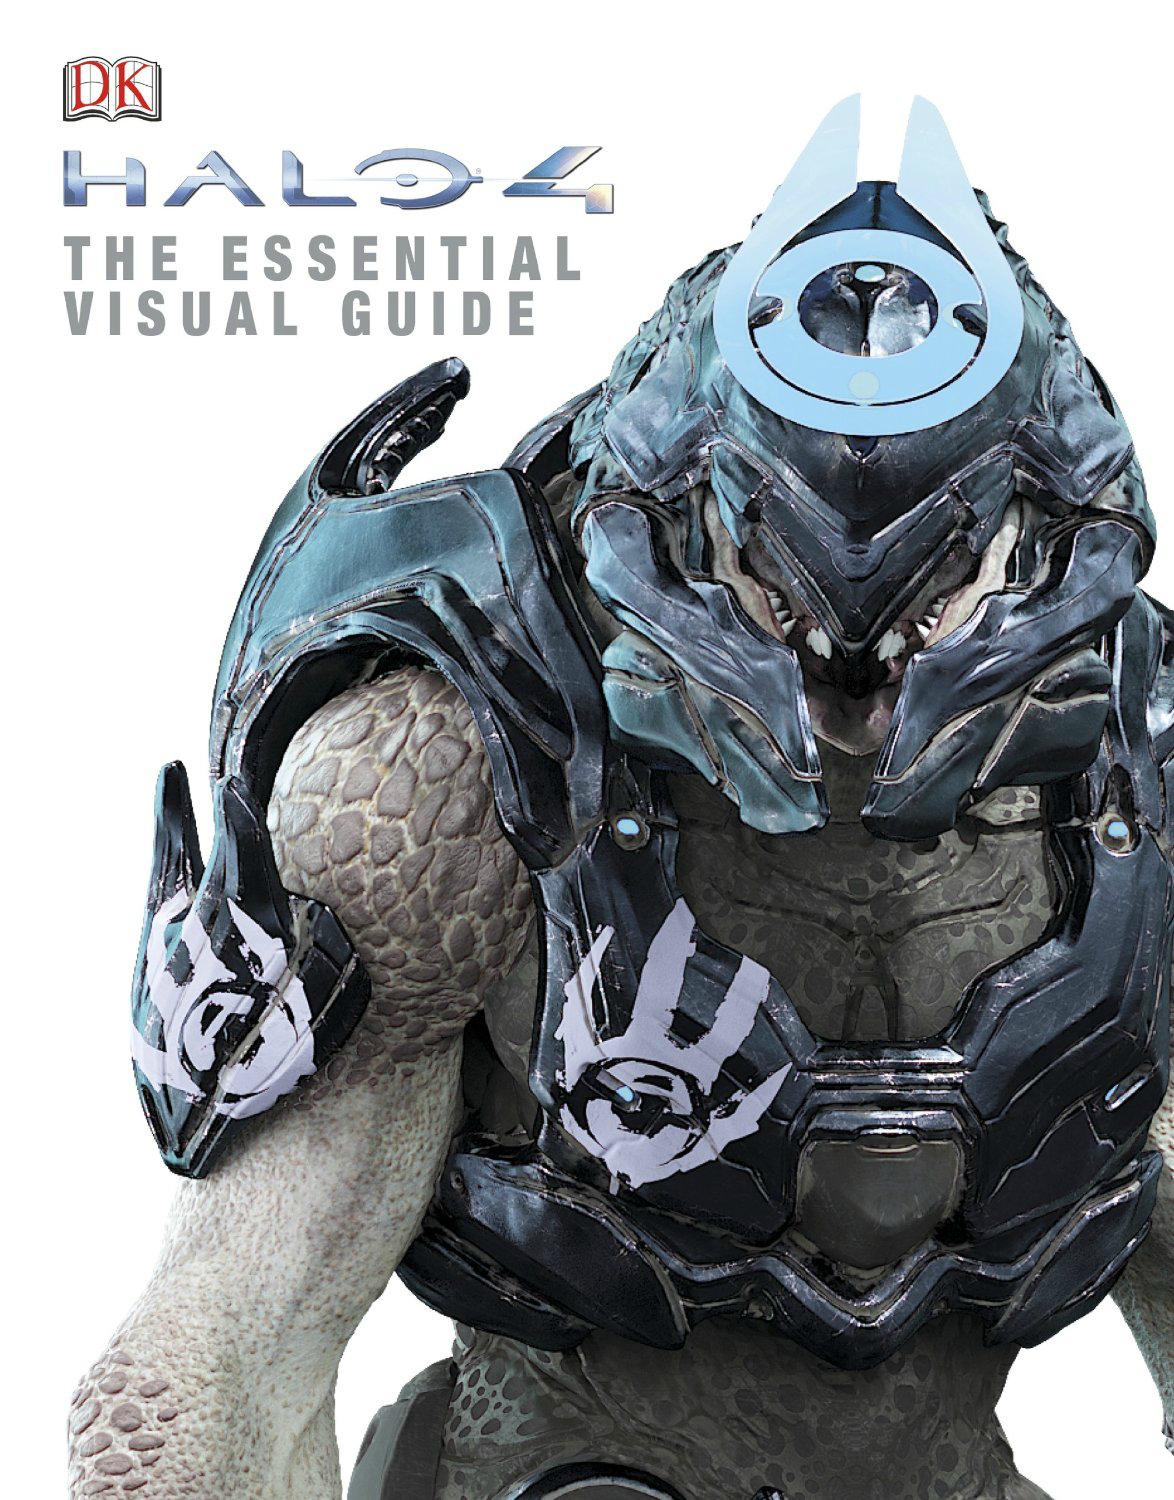 halo 4 the essential visual guide halo nation fandom powered by rh halo wikia com Dog Halo Guide Dog Halo Guide